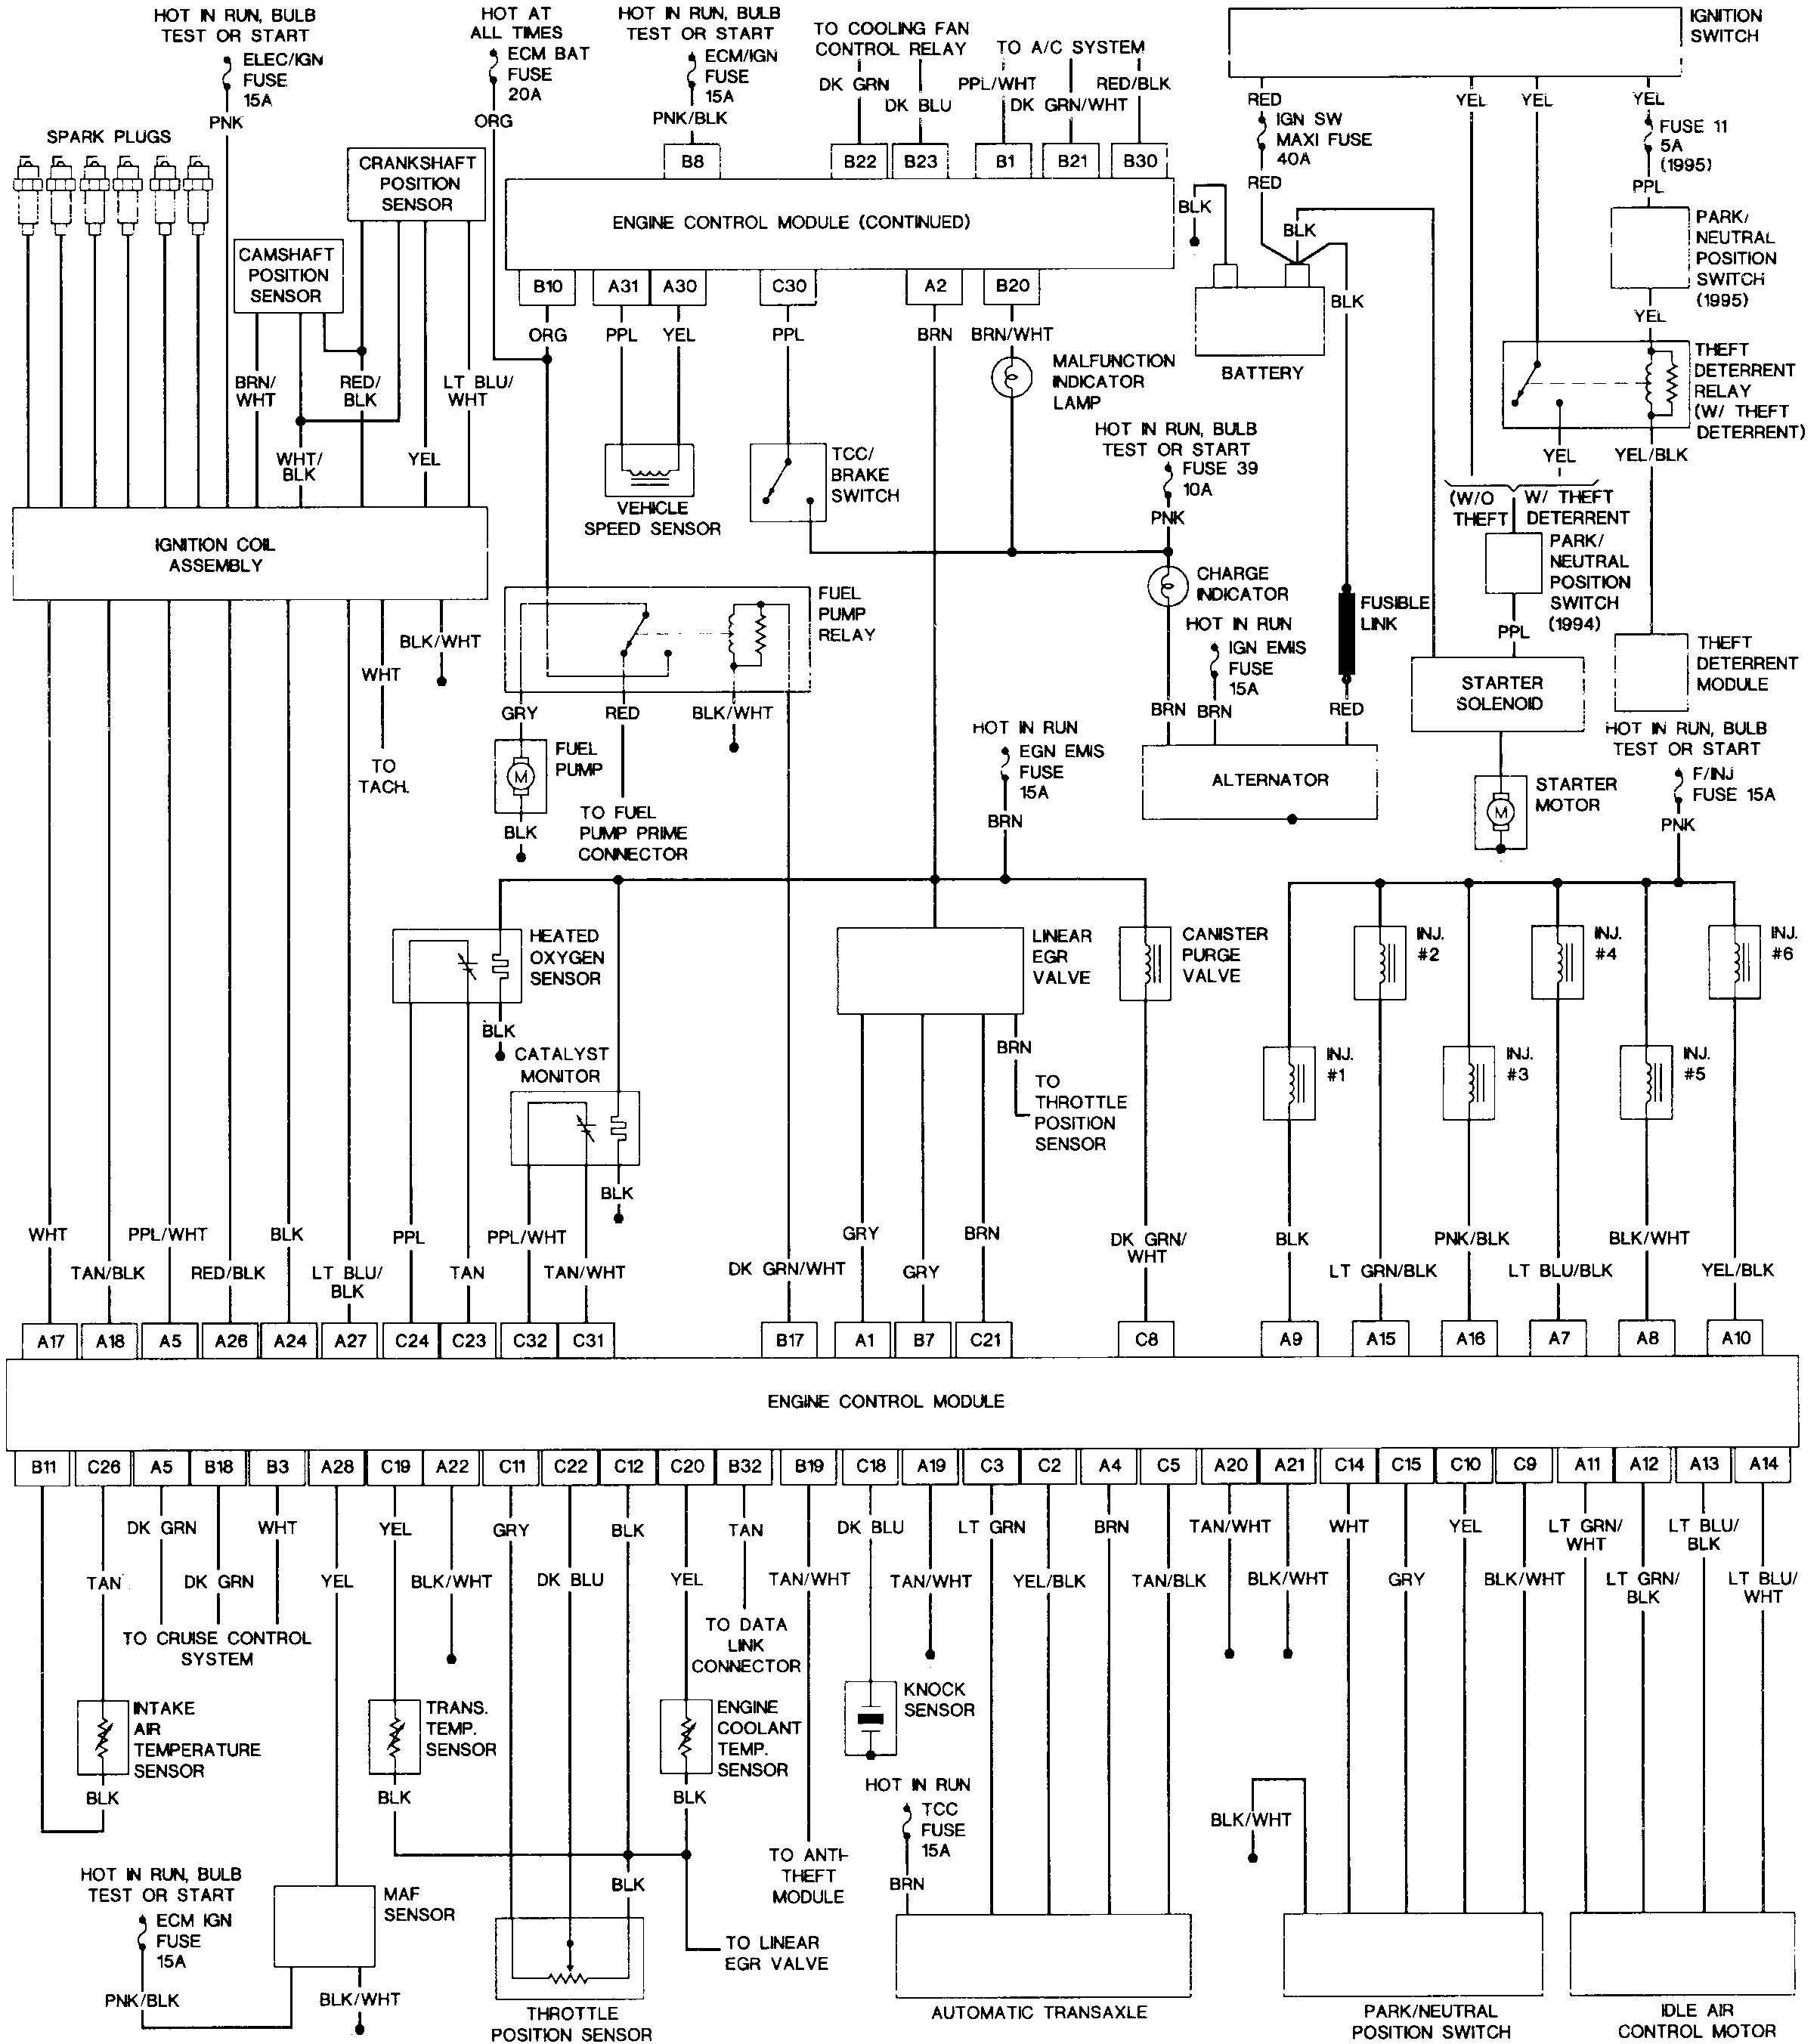 Unique Jeep Grand Cherokee Ignition Wiring Diagram